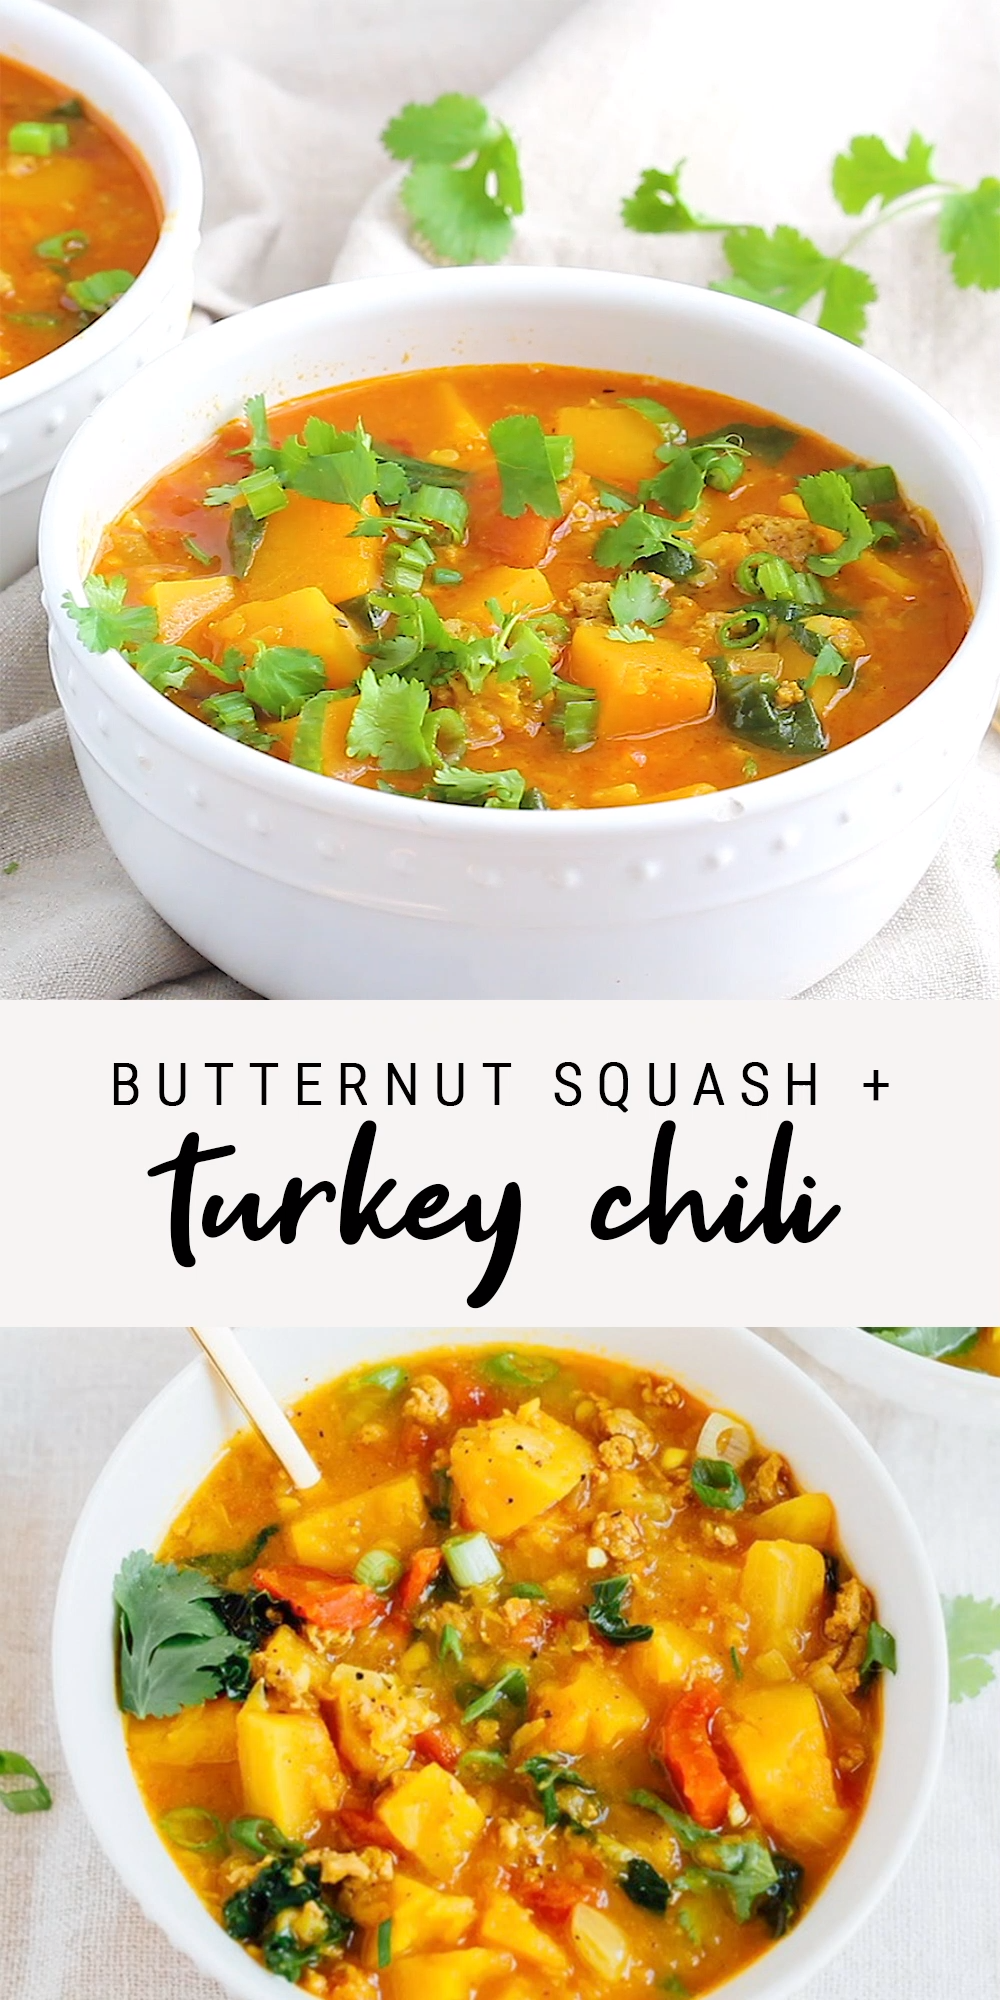 Butternut Squash + Turkey Chili | Instant Pot or Stovetop Healthy Recipe